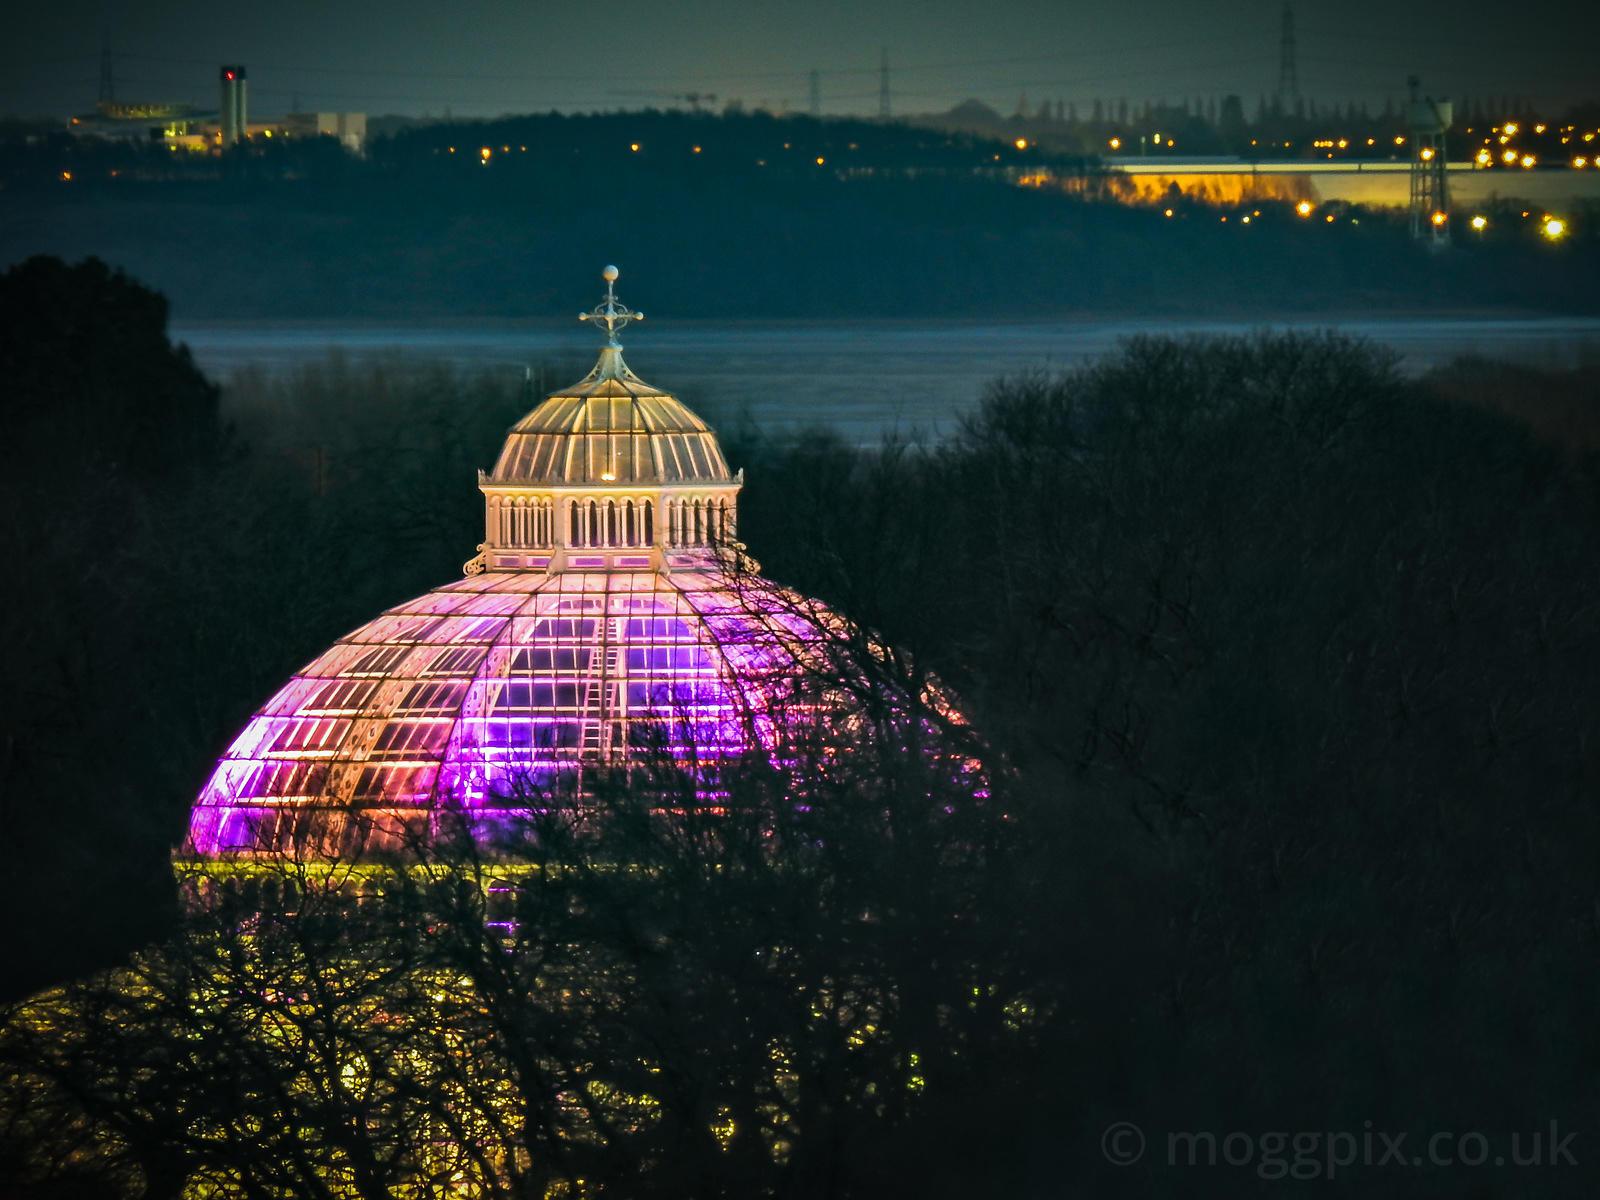 The Palm House at Night